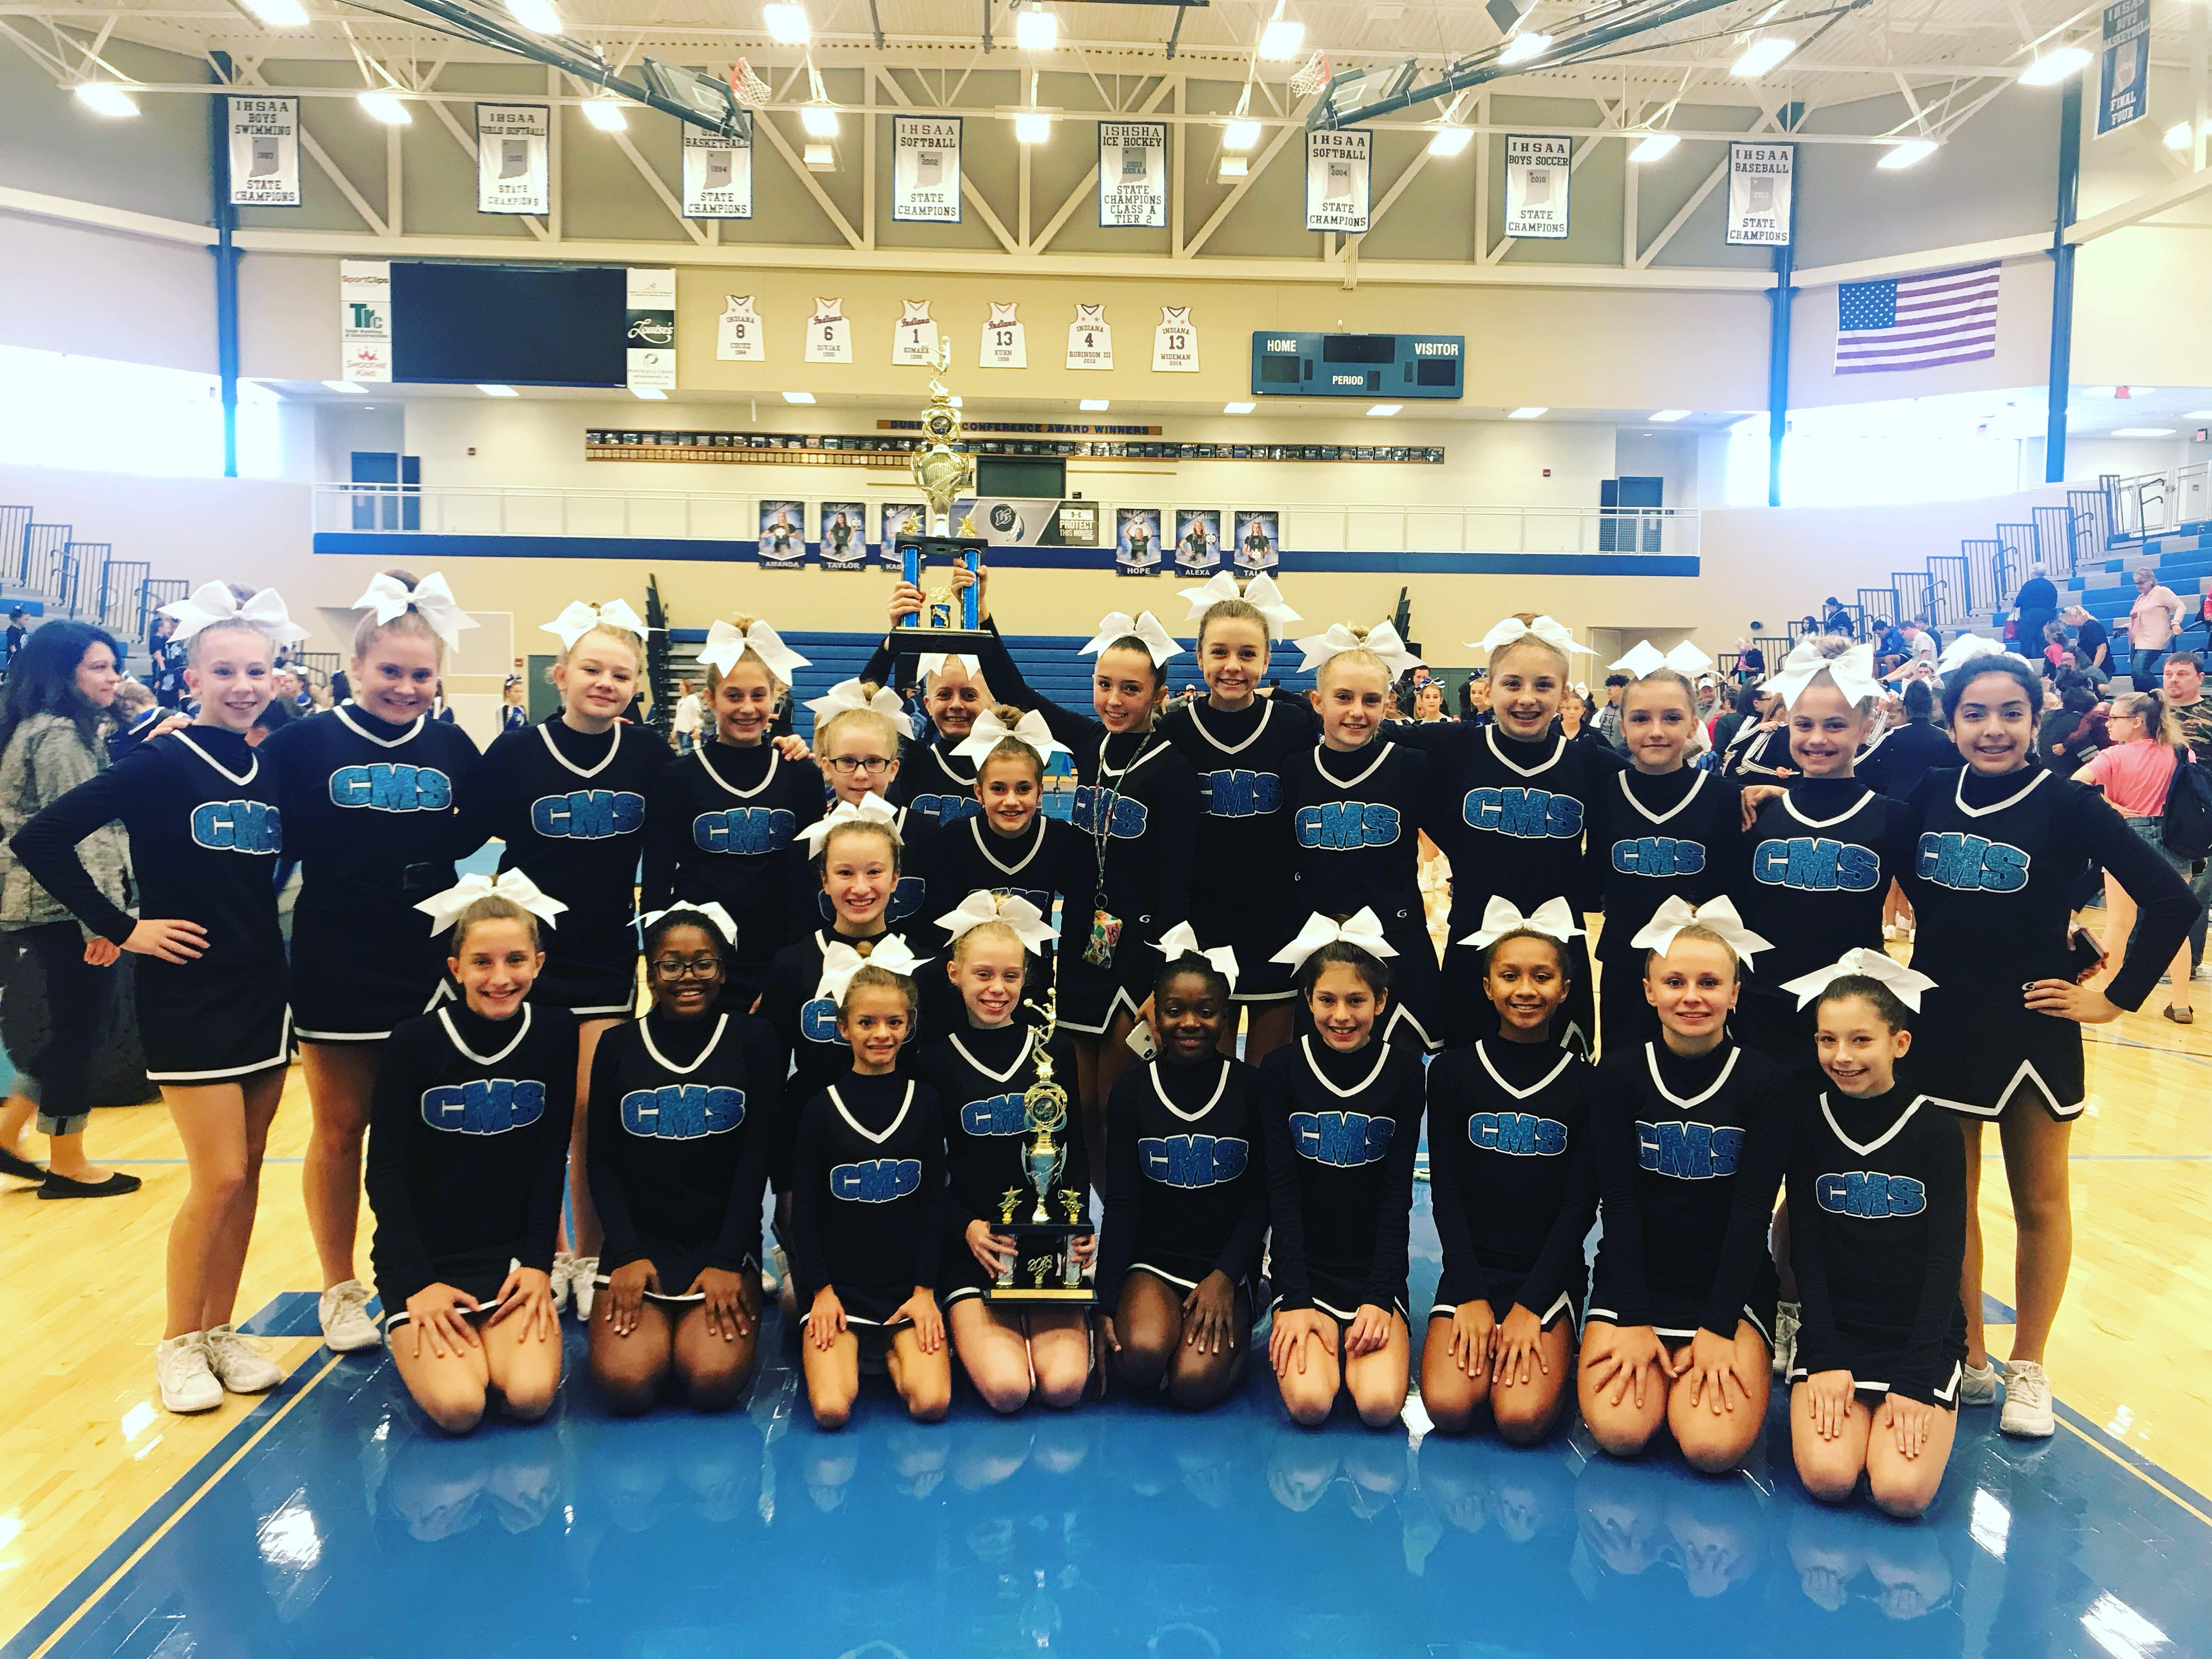 Congratulating the Clark cheer team on their First Place in the Time Out Division, and 3rd place in the Junior High Division at the Lake Central Competition on Saturday Sept 22nd.